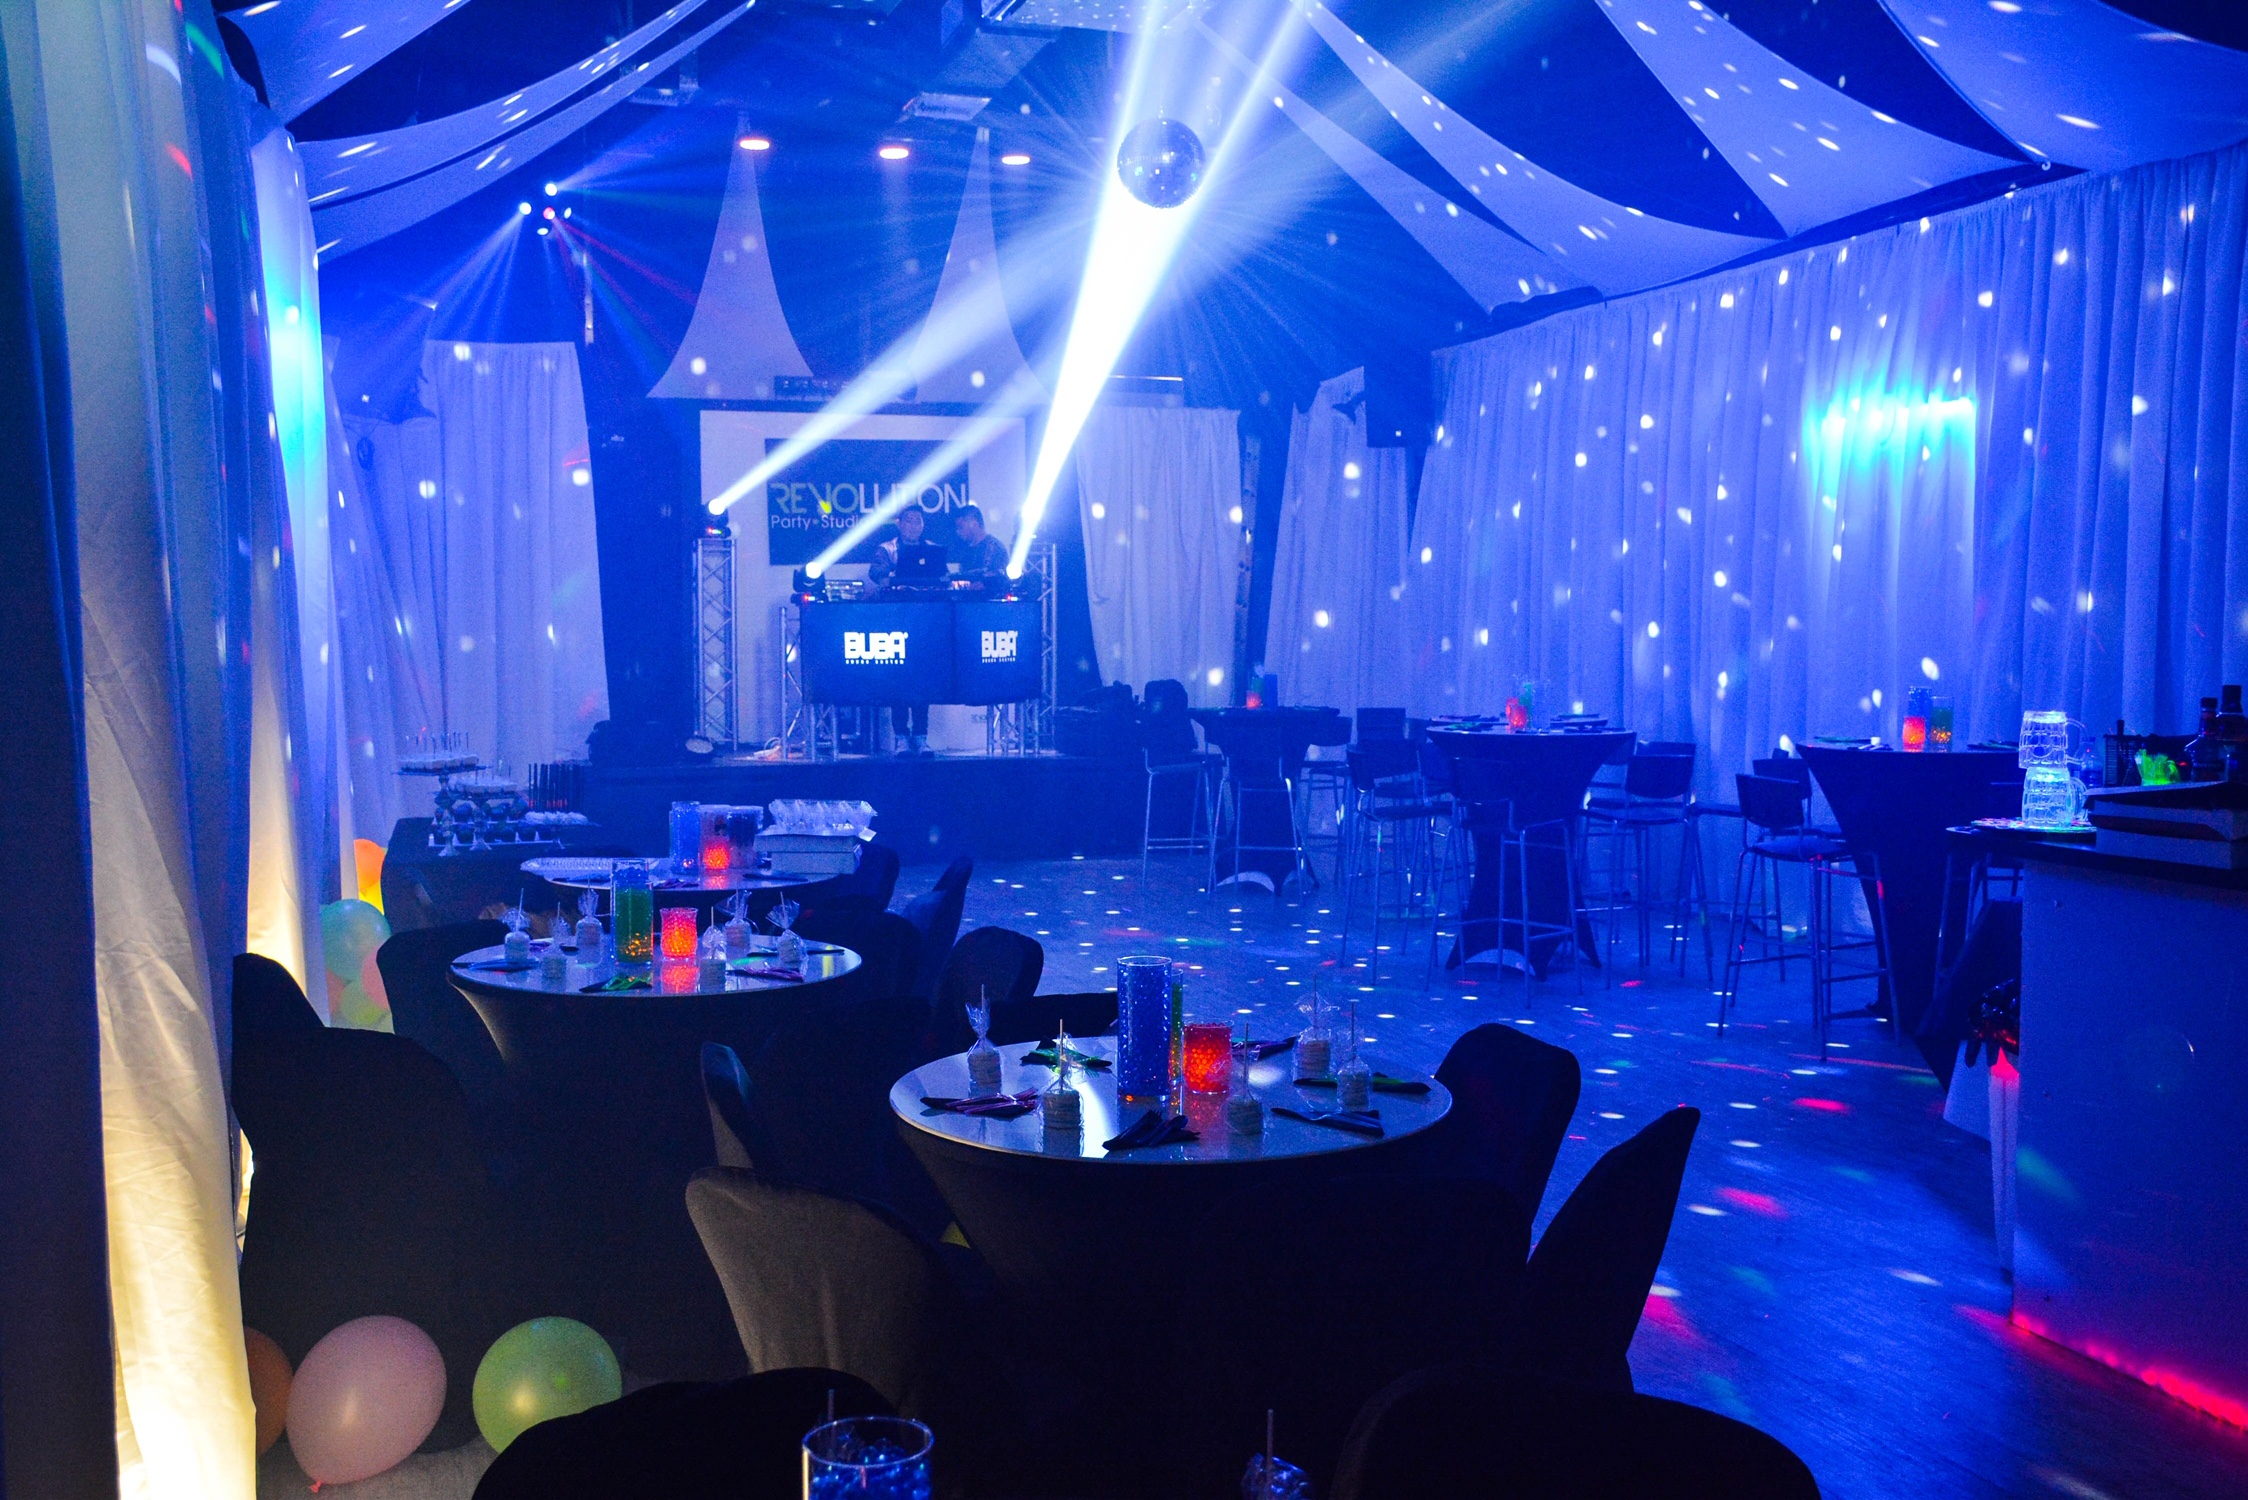 Light show with blue lights in an event venue